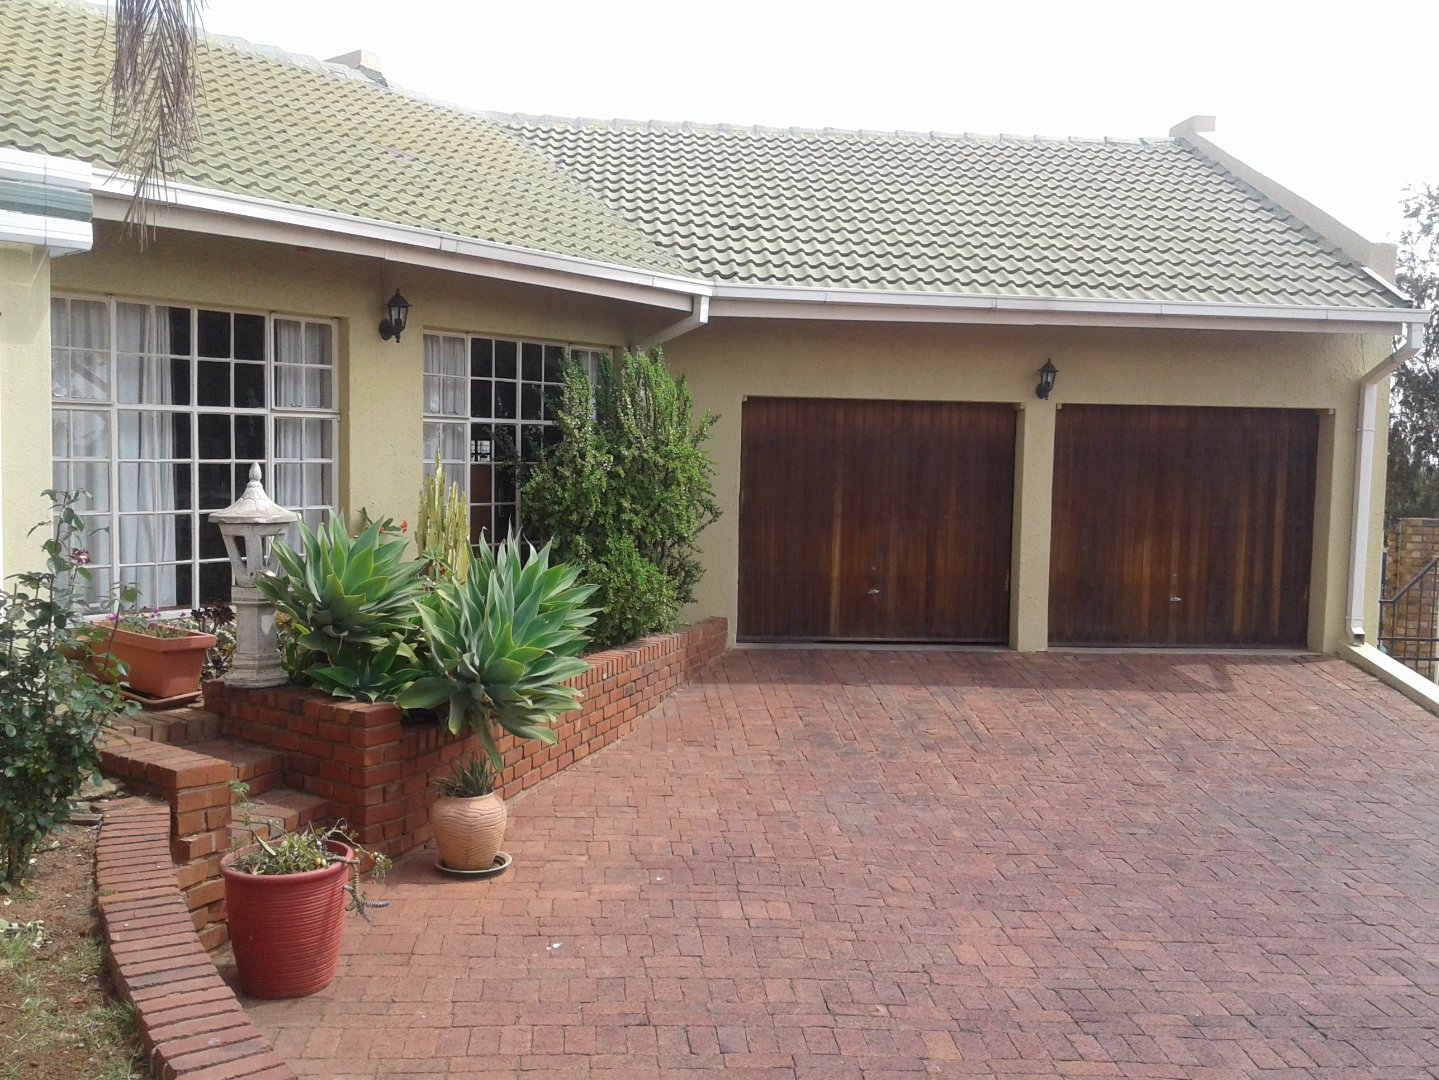 Pretoria, Elarduspark Property  | Houses For Sale Elarduspark, Elarduspark, House 4 bedrooms property for sale Price:1,990,000